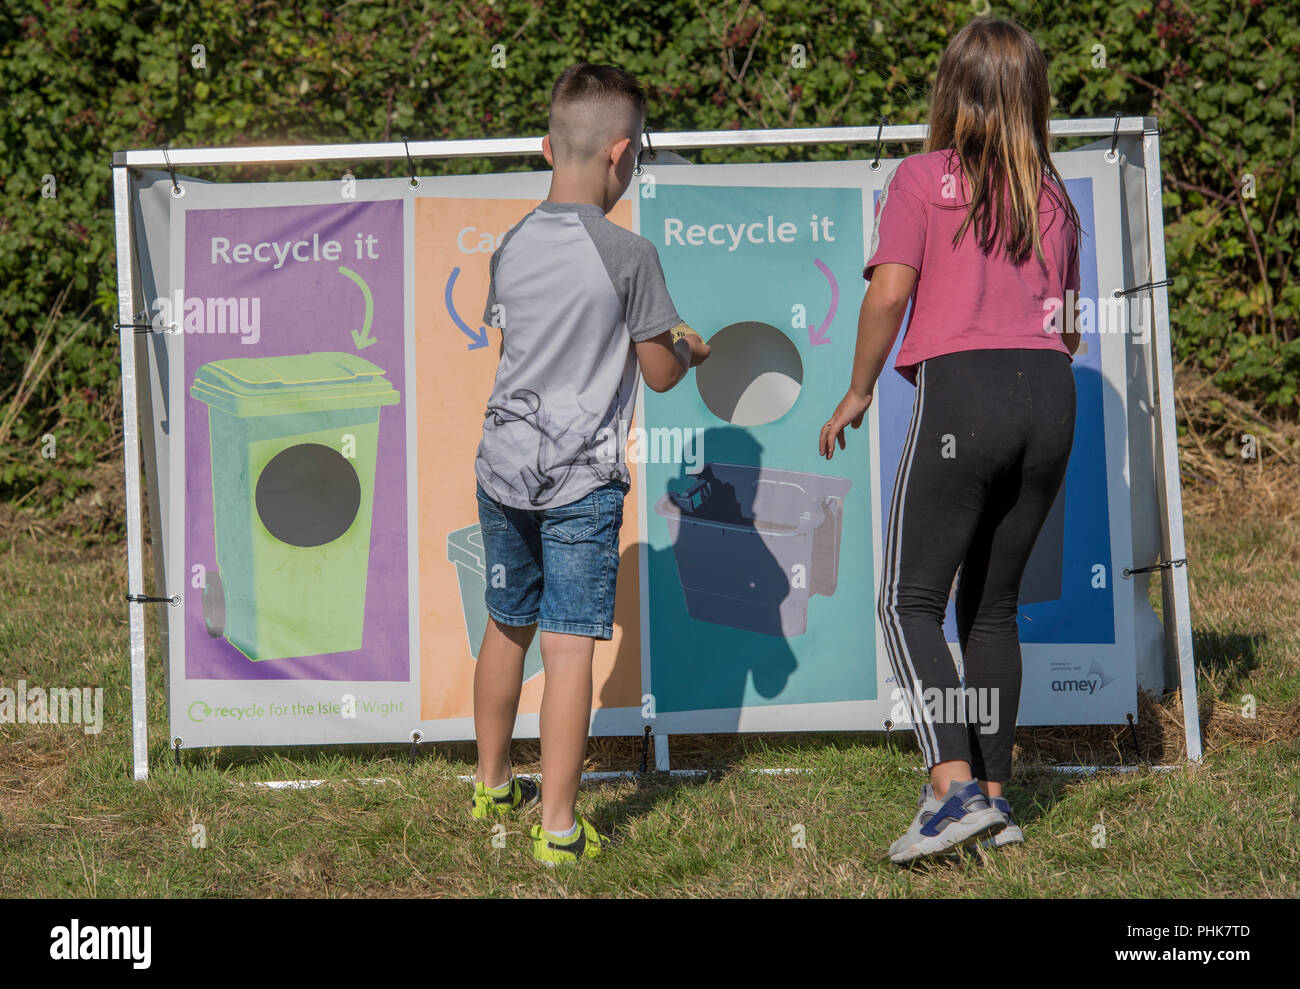 children learning how to recycle different recyclable items by pushing through holes and learning about the environment and sustainability. - Stock Image